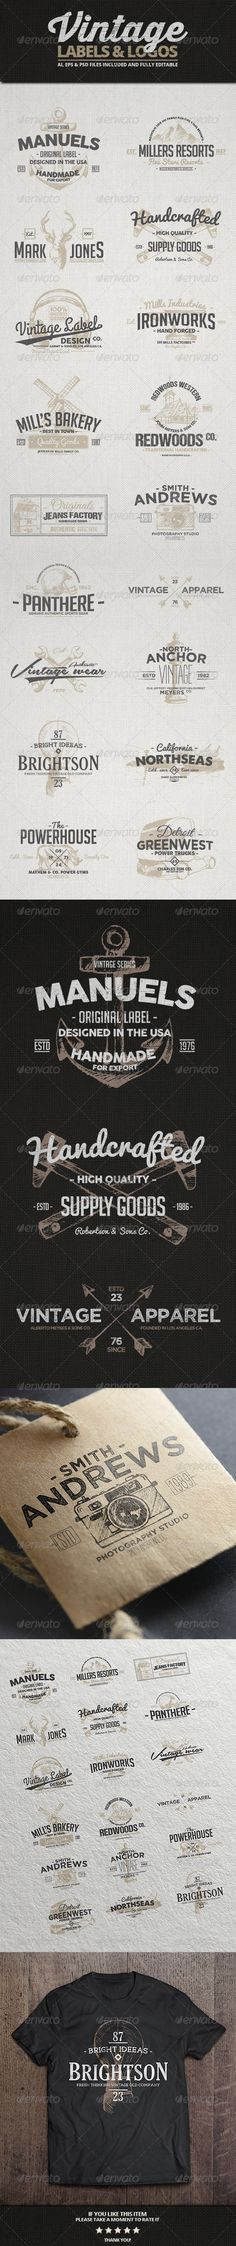 Vintage Labels & Logos Template   Buy and Download: http://graphicriver.net/item/vintage-labels-logos-vol3/8207558?WT.ac=category_thumb&WT.z_author=Alex_Zeppelin&ref=ksioks